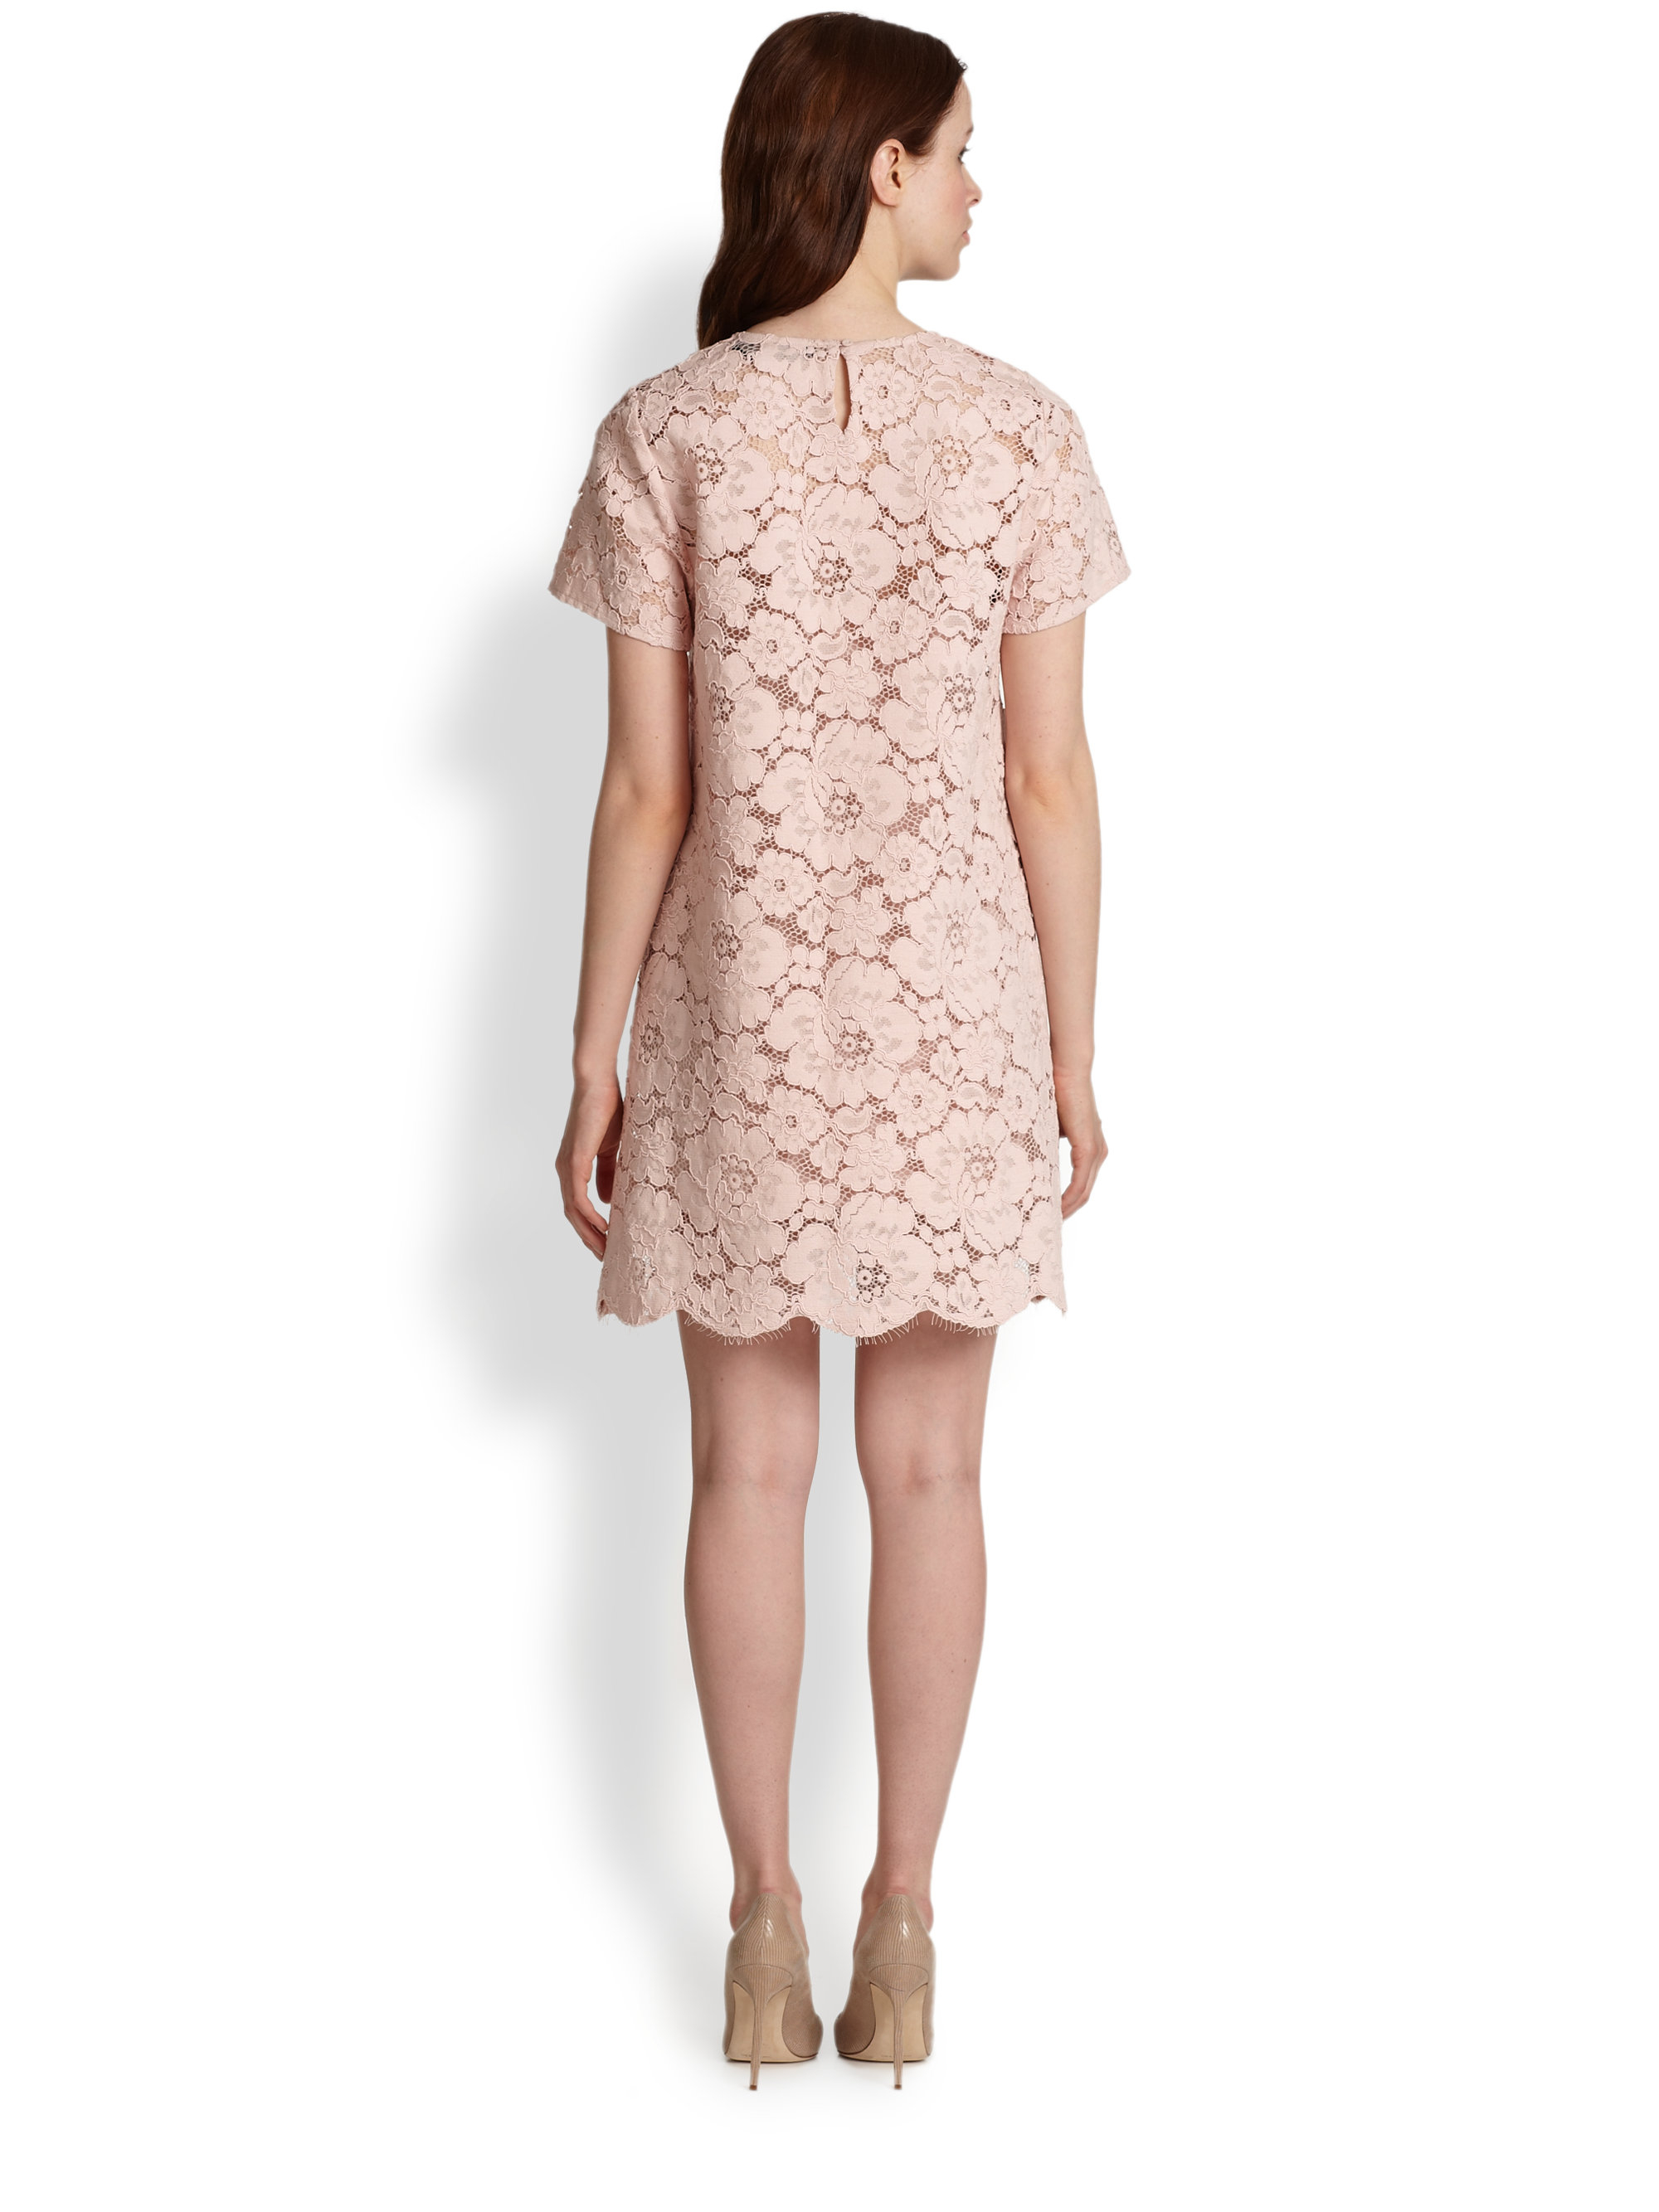 Lyst - Bcbgmaxazria Floral Lace Dress in Pink